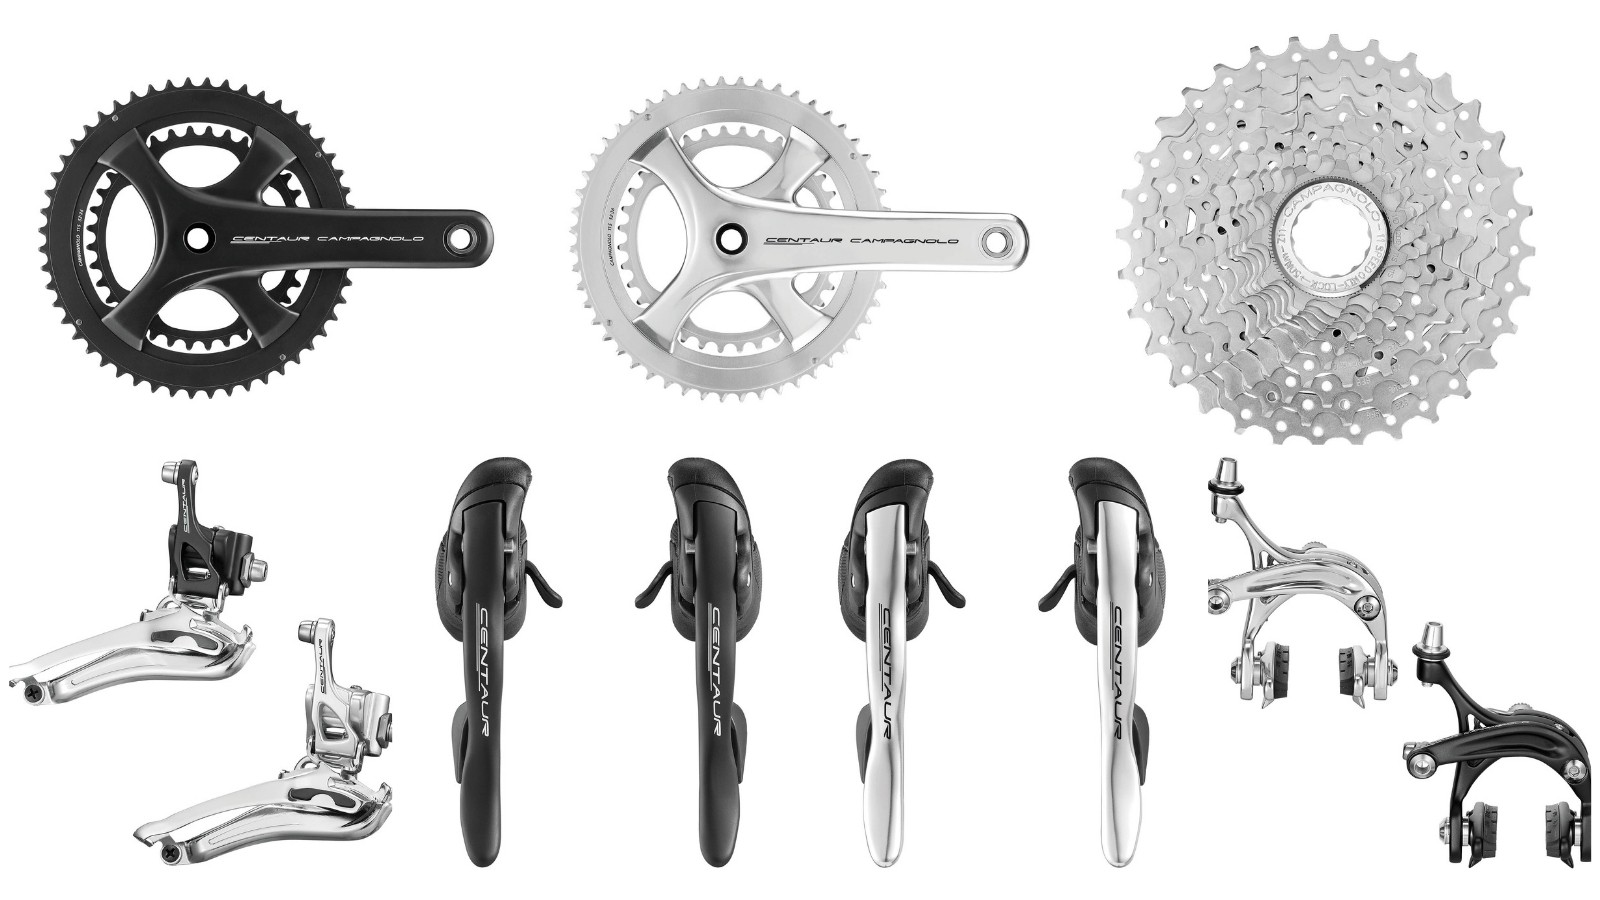 There's a whole bunch of Campag Centaur components on offer